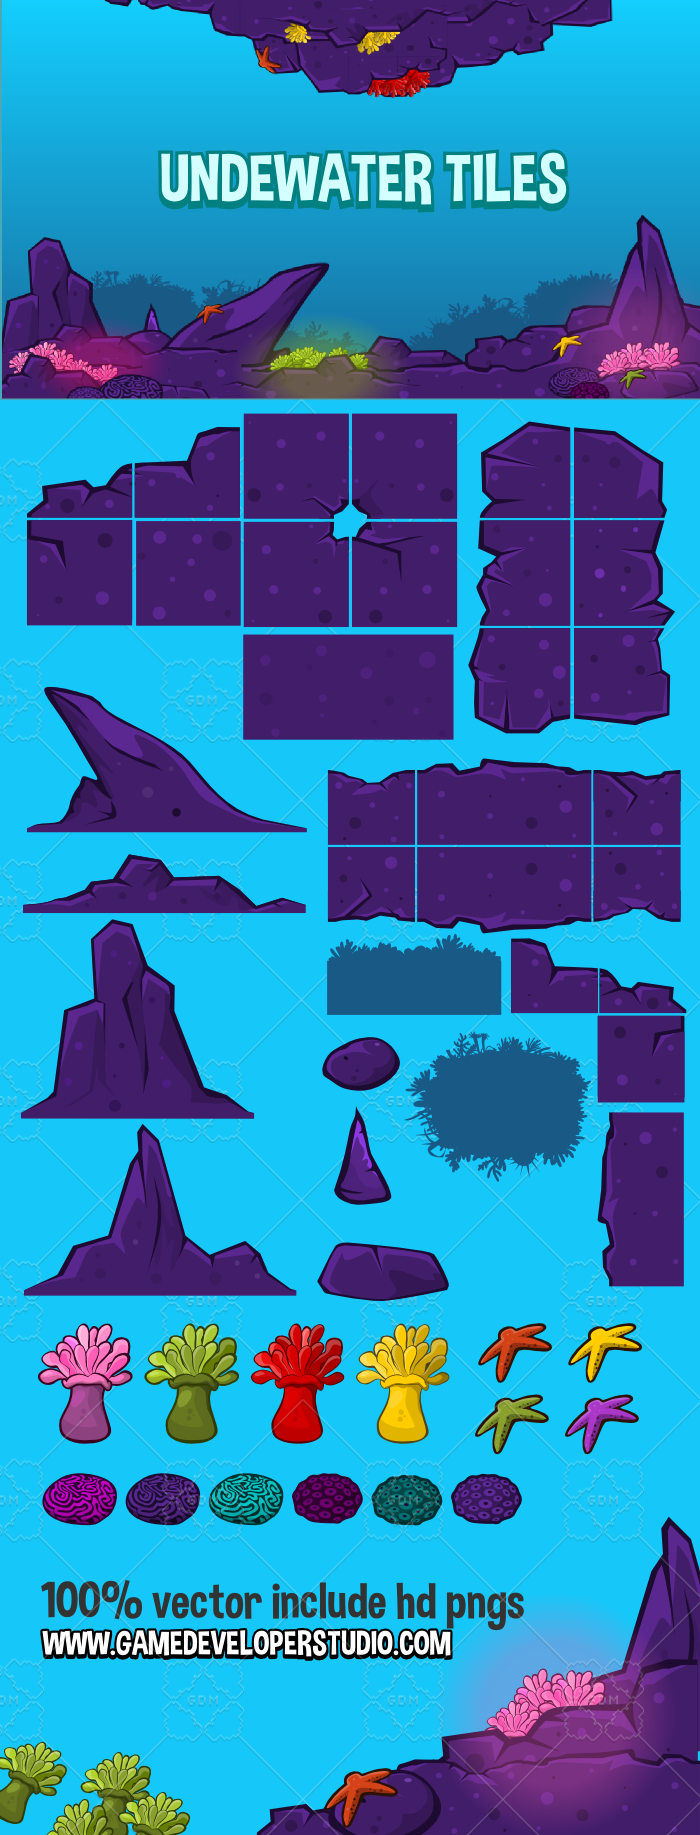 Underwater tile set